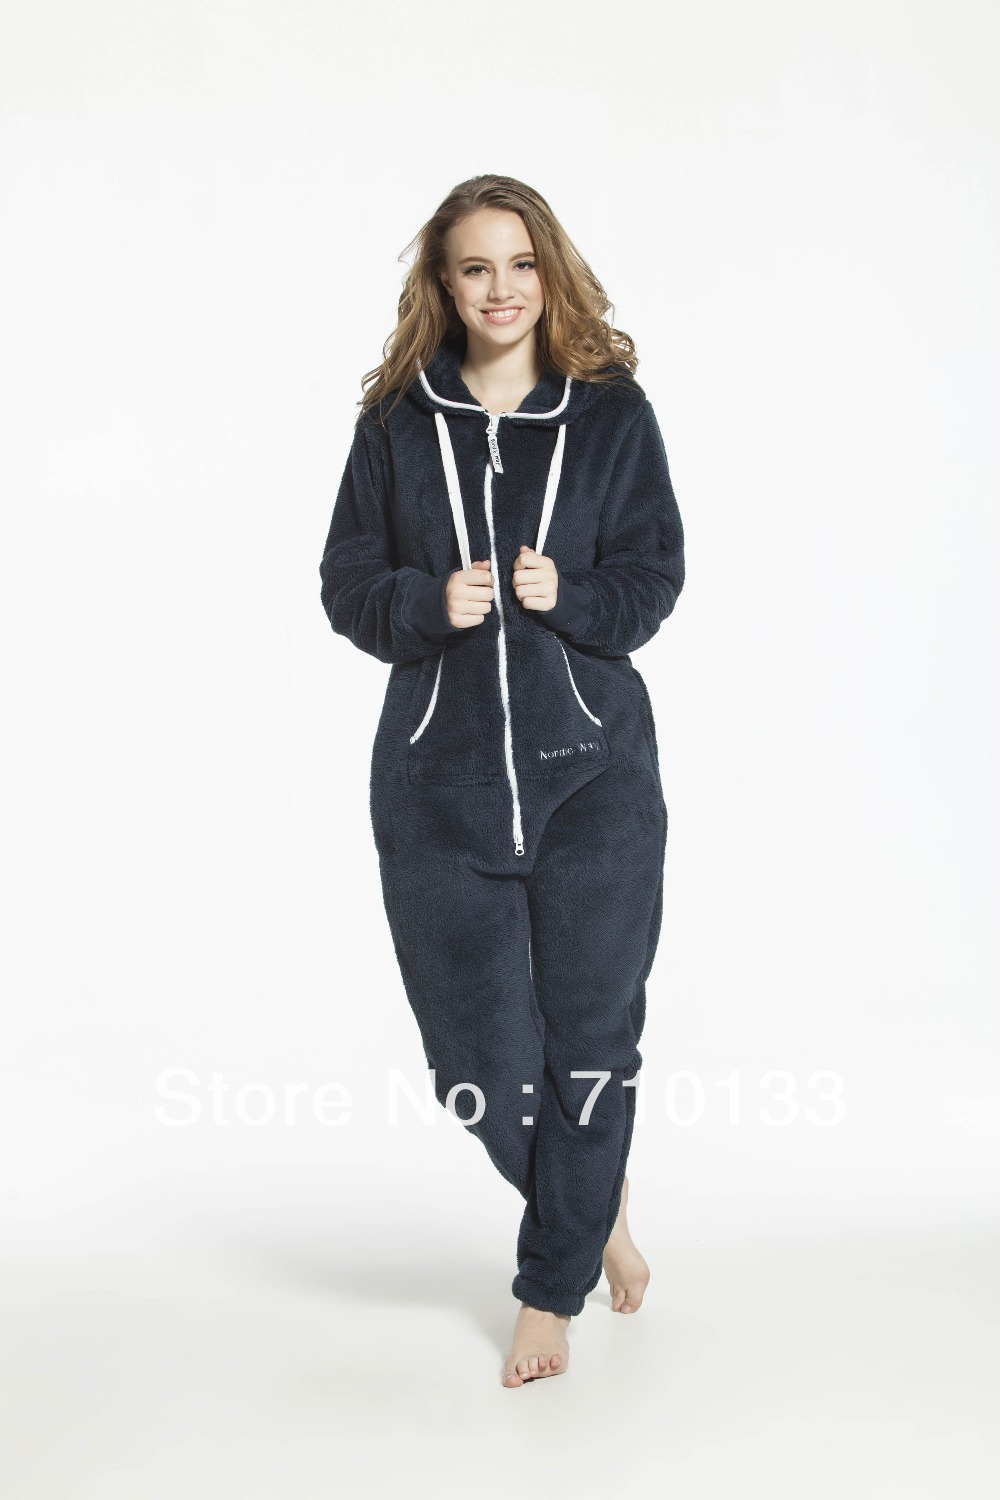 one piece jumpsuit all-in-one suit unisex adult onesies fleece jump in suit all-in-one piece teddy fleece